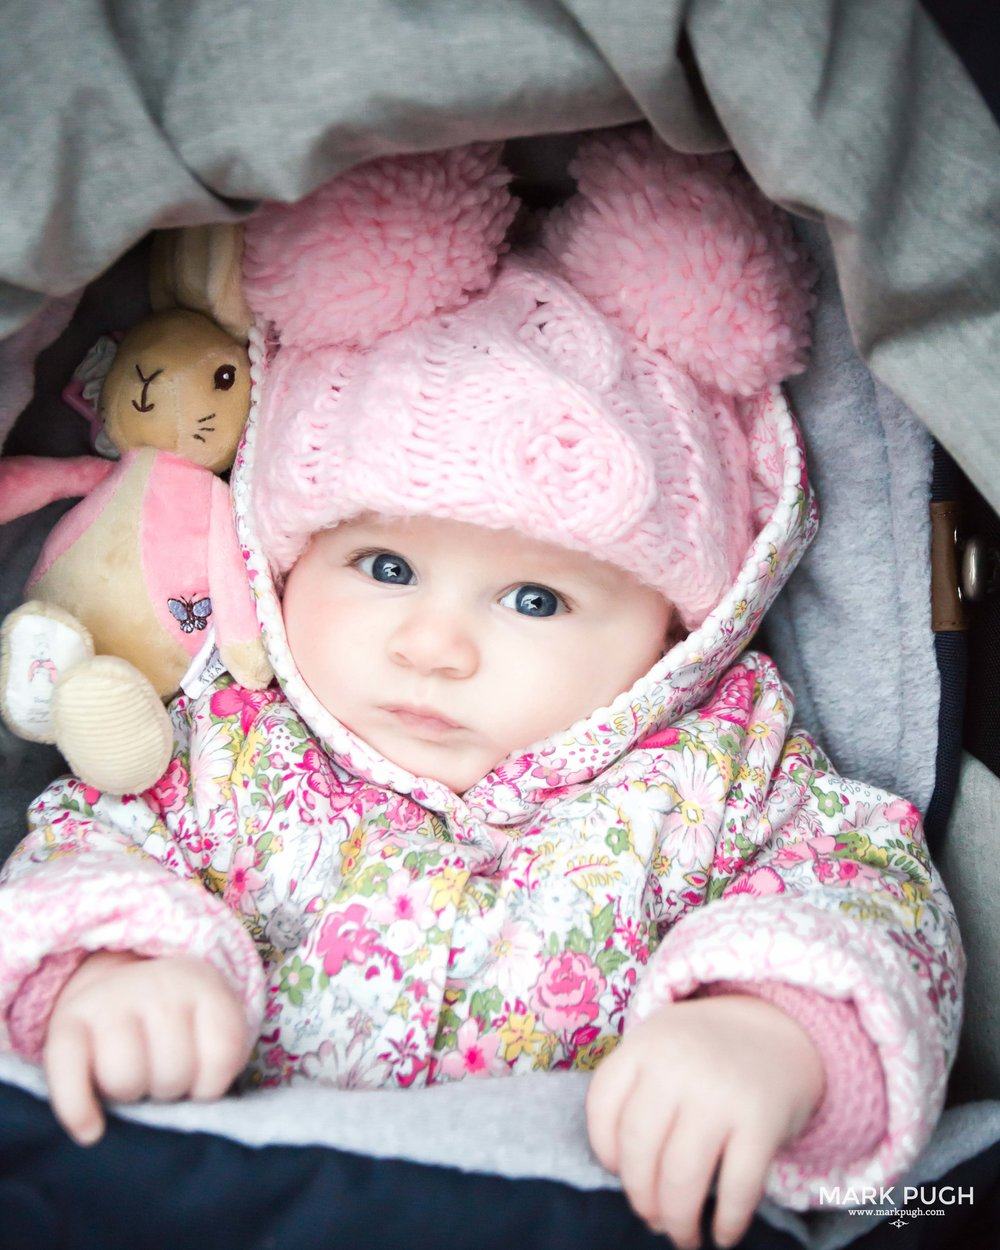 040 - Emma Damien and Betsy - fineART family and baby photography in Nottingham by www.markpugh.com Mark Pugh of www.mpmedia.co.uk_.JPG